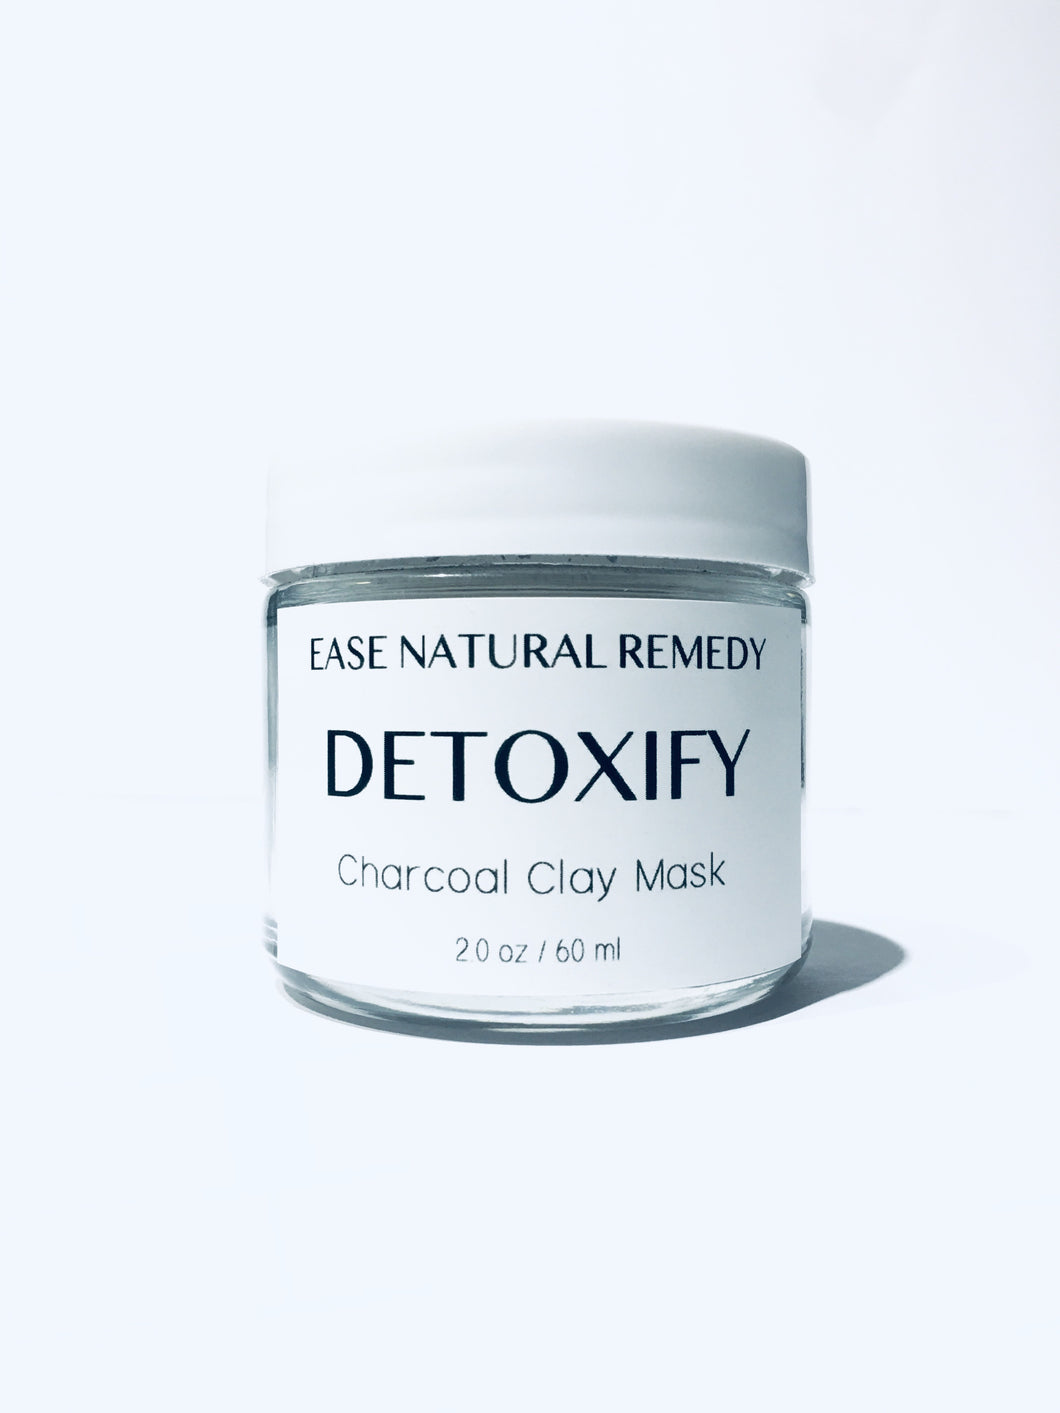 DETOXIFY - Charcoal Clay Mask / Deep Pore Cleansing / Oily,Acne prone skin (SOLD OUT)